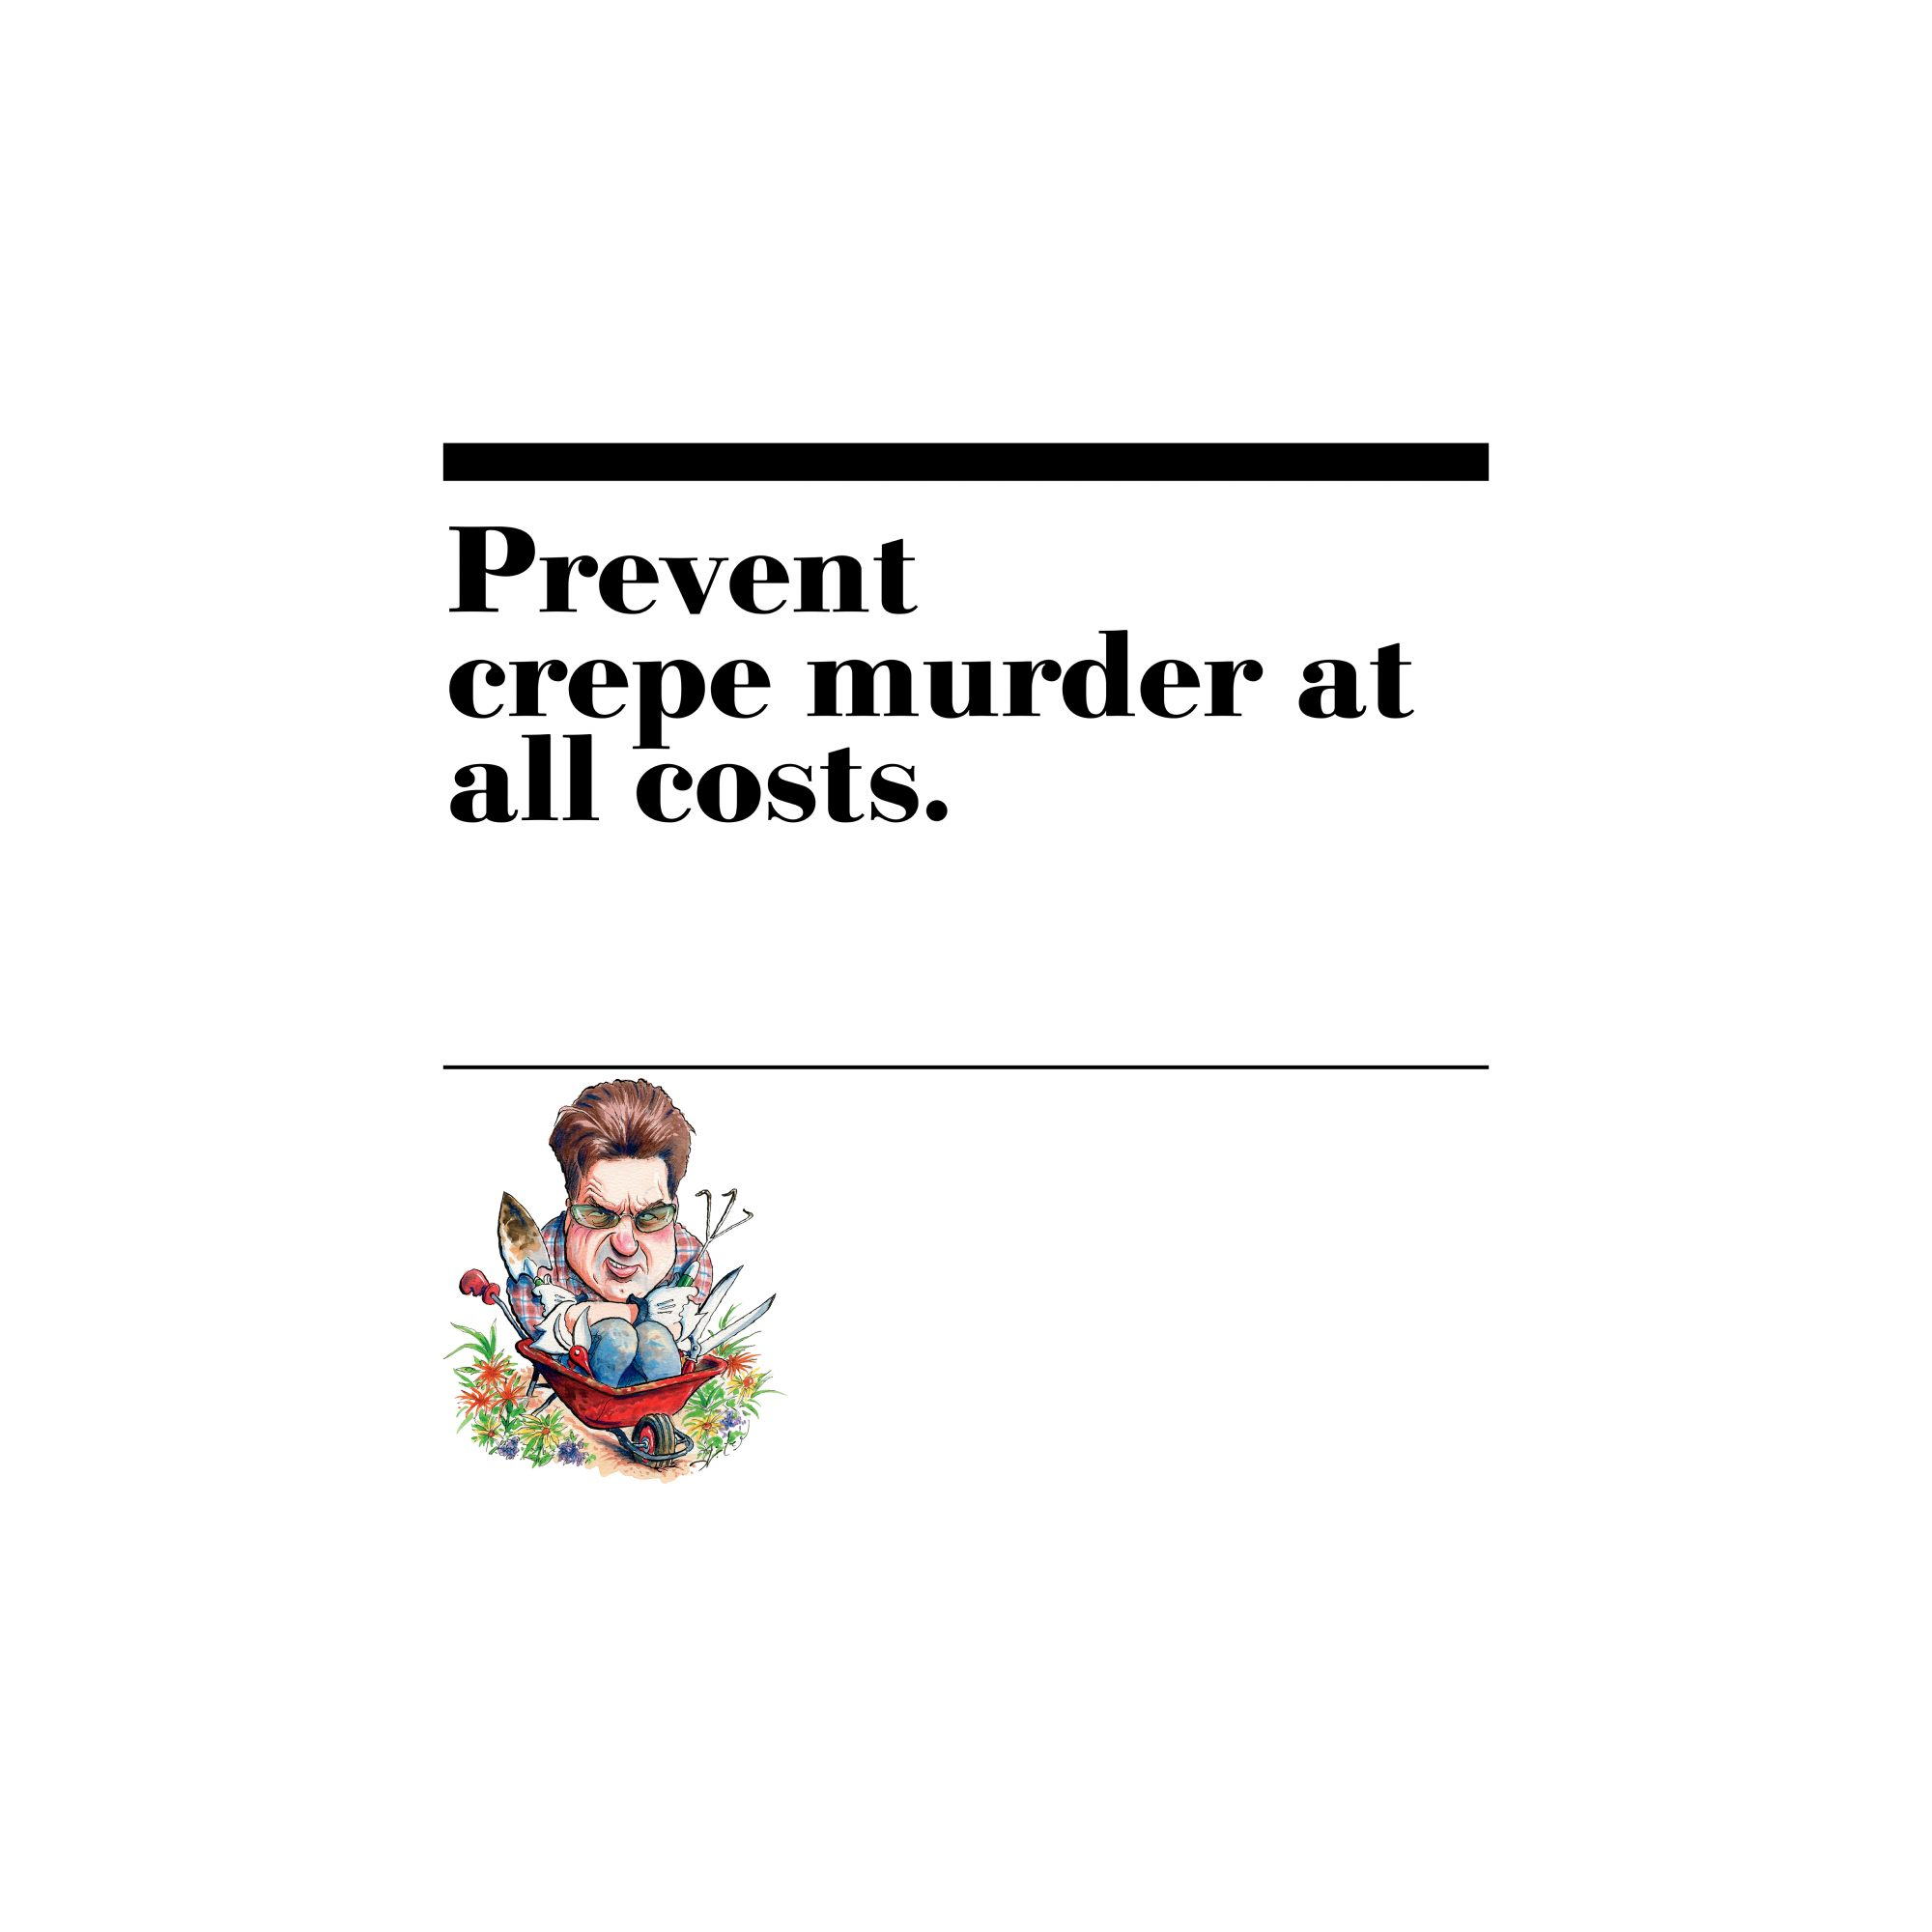 6. Prevent crepe murder at all costs.